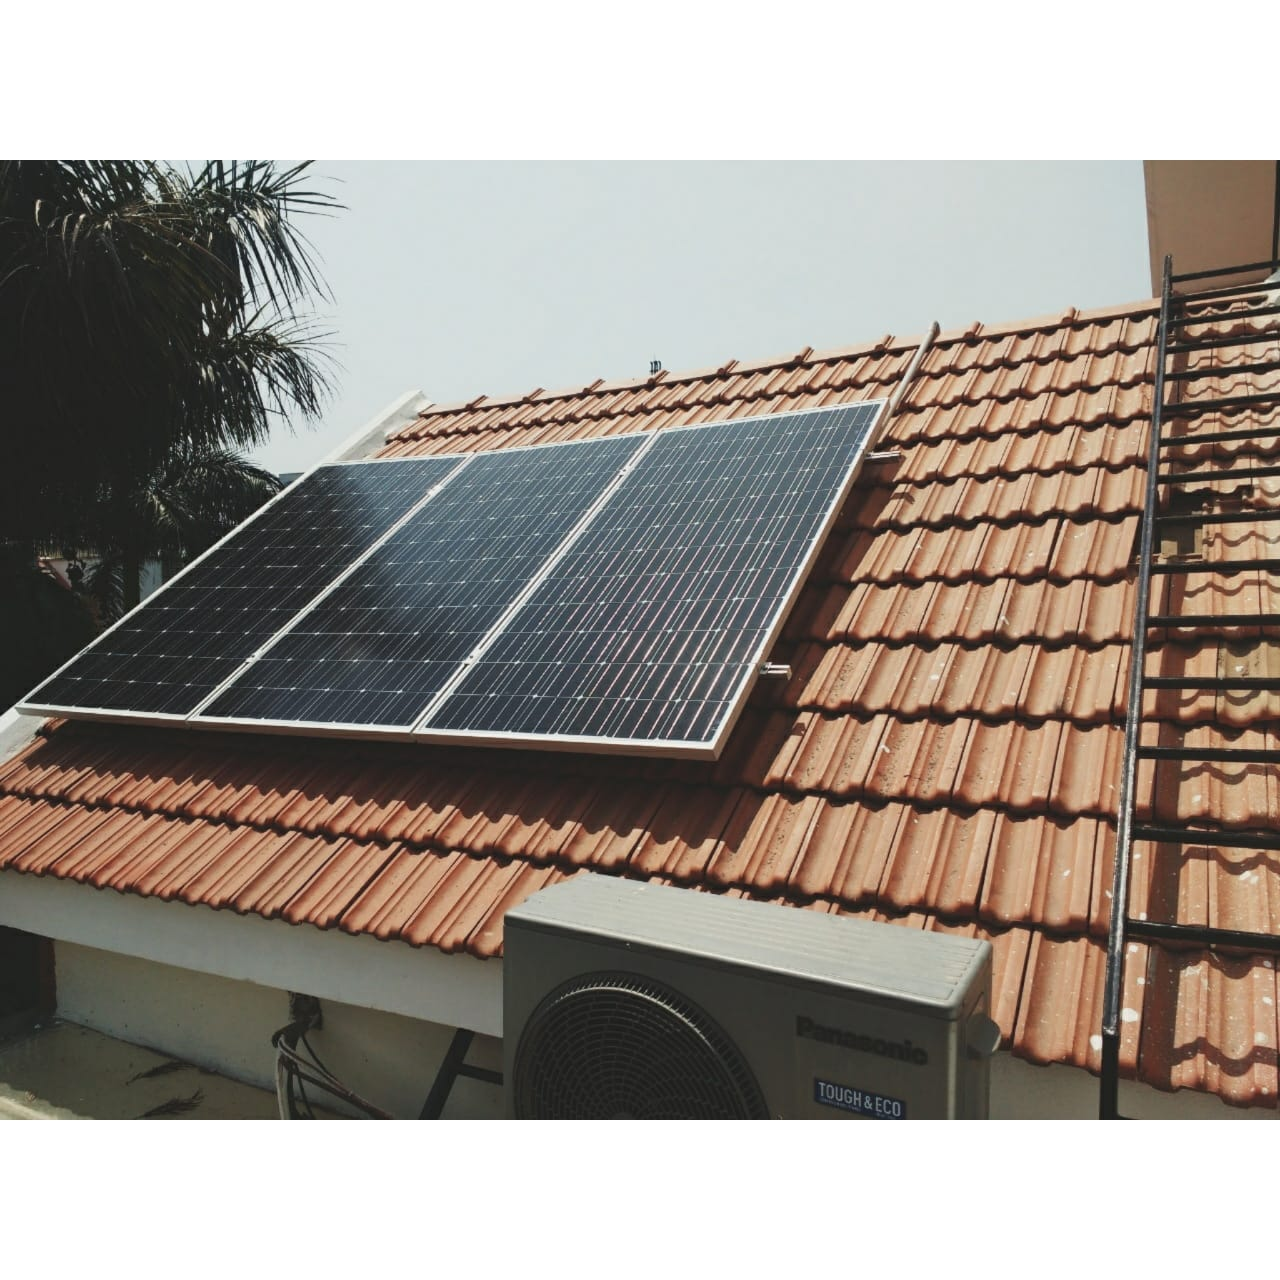 Installation on tile roof